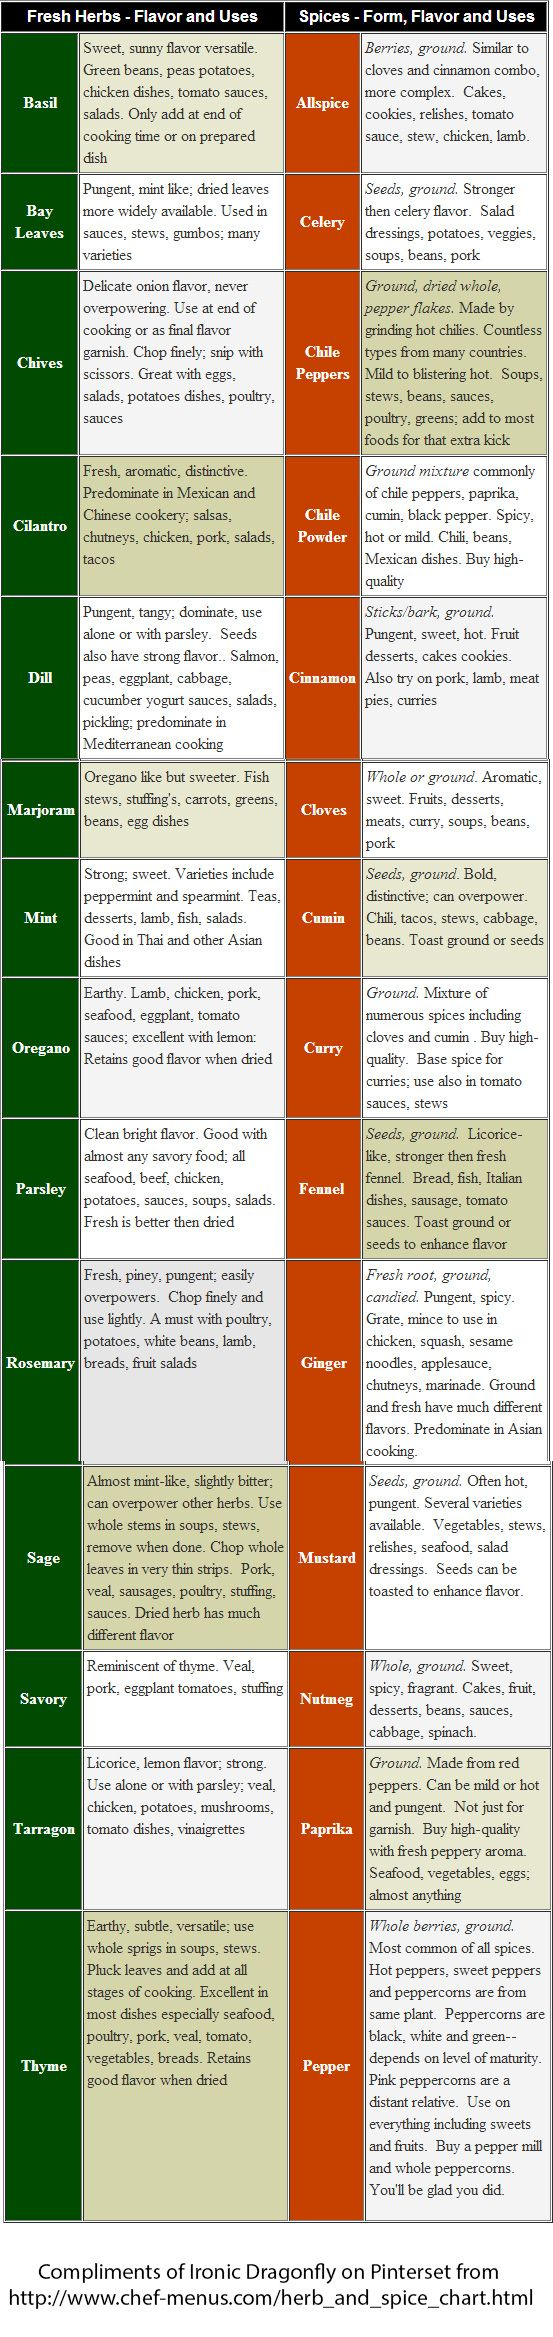 Herb & Spice Chart - I redid to an image -  really good info from chef-menu.com - original link in image